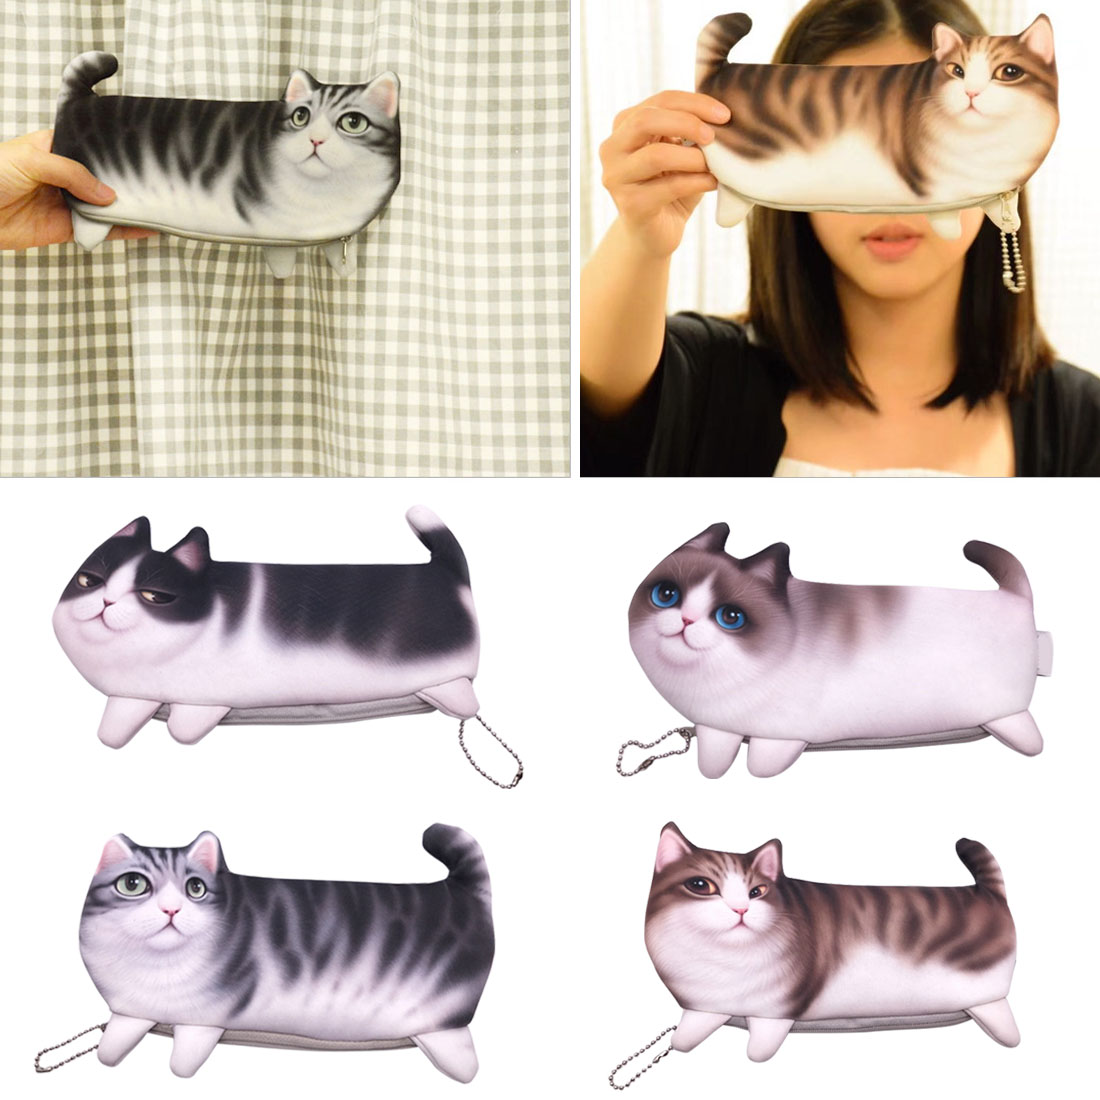 Pencil Cases & Bags Office & School Supplies 2018 Creative Fashion Kawaii Novelty Simulation Cartoon Cat Canvas Pencil Case Cute Soft Cloth School Stationery Pen Bag Gifts